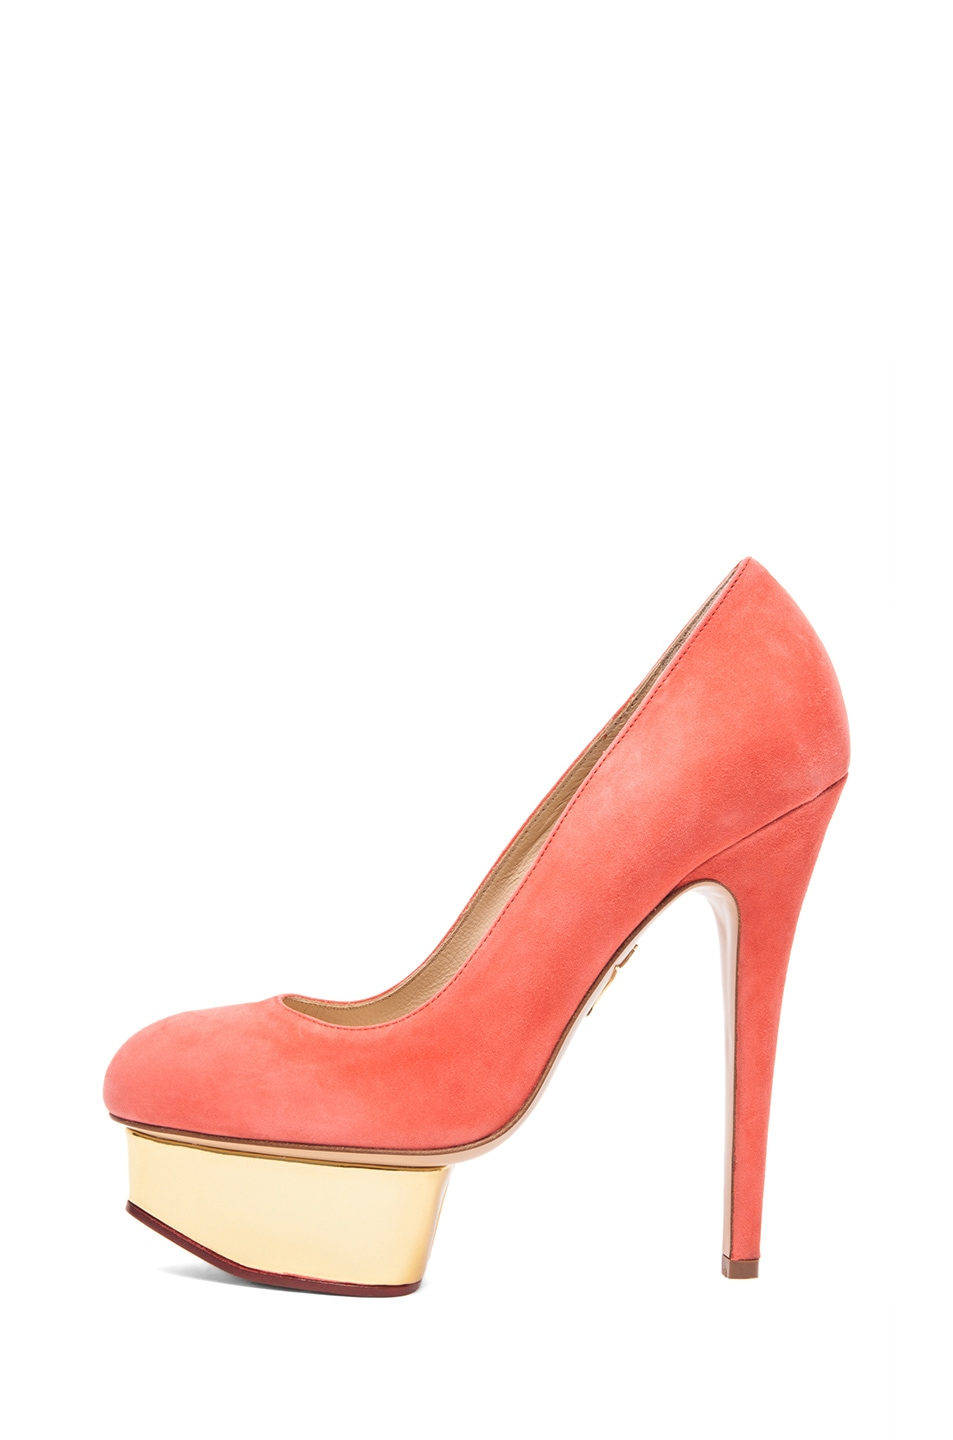 Image 1 of Charlotte Olympia Dolly Puttin On The Glitz Suede Pump in Coral